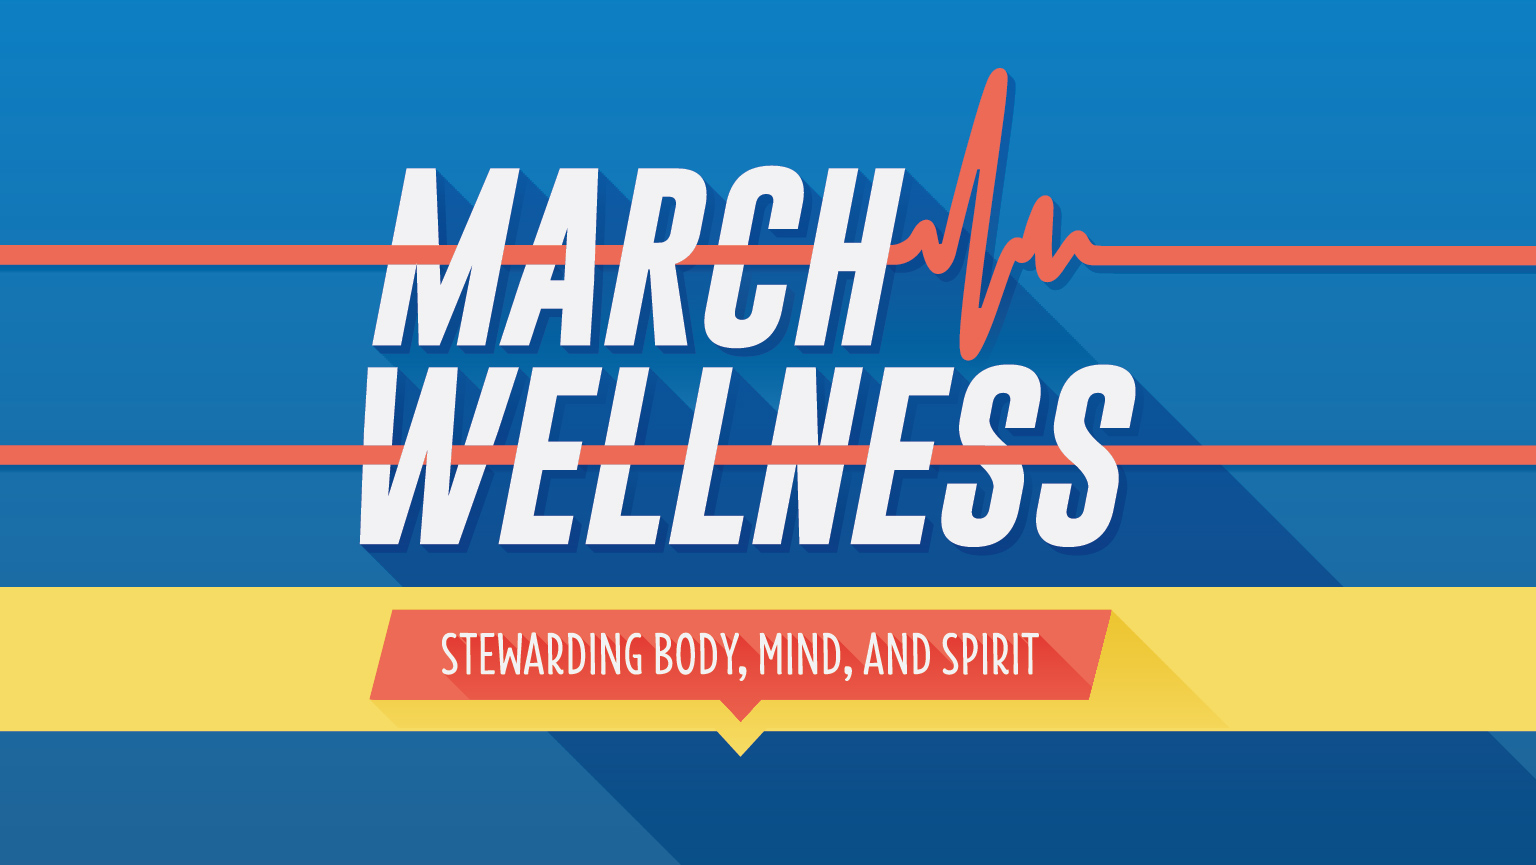 Week One: Whole Being Wellness